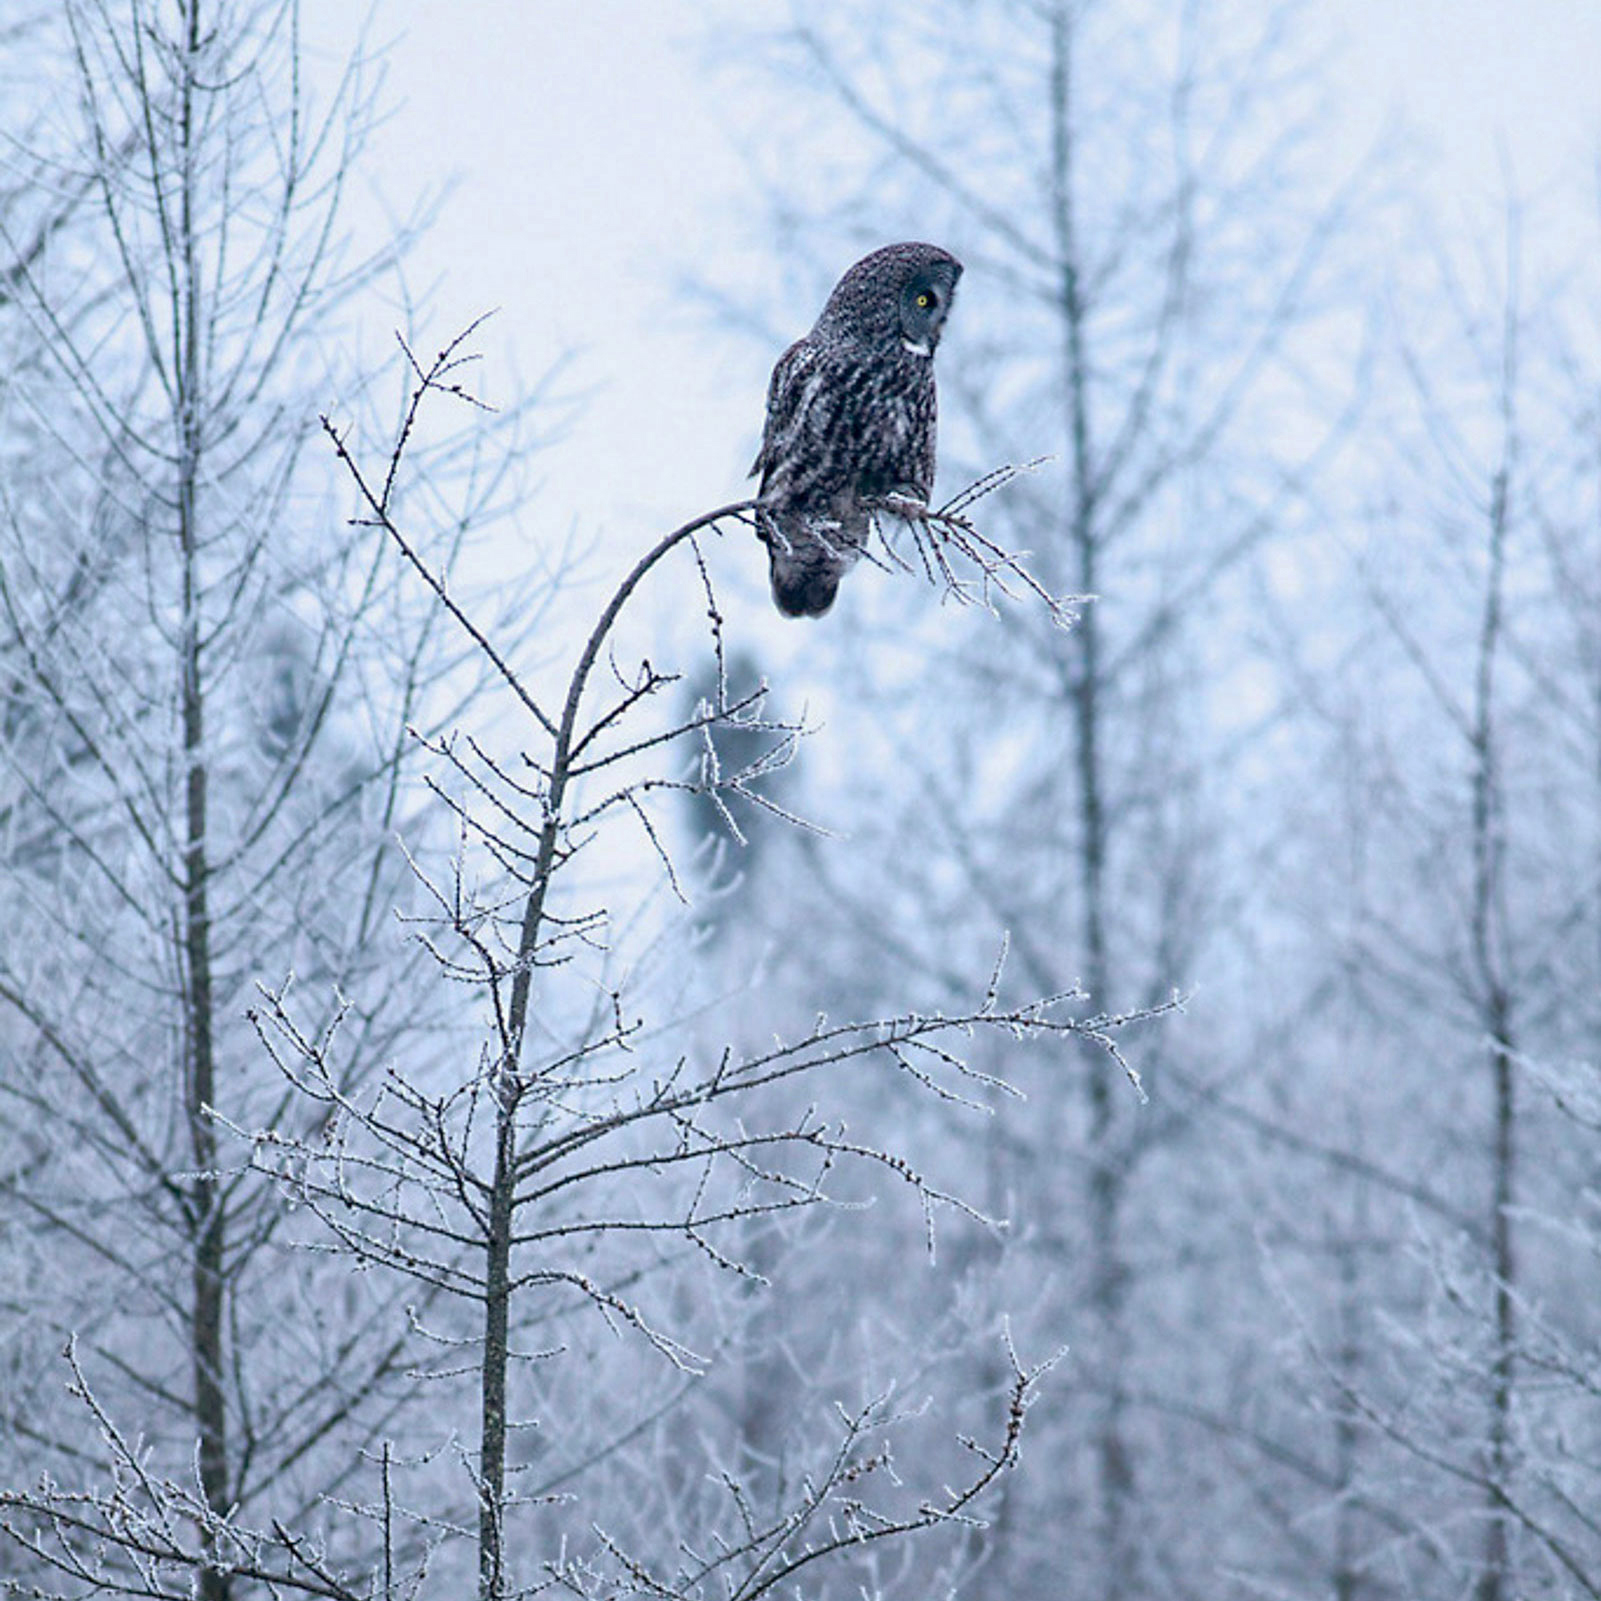 Go ahead and stay indoors; you'll only miss the chance to glimpse a majestic Great Grey Owl. Sparky Stensaas/Audubon Photography Awards